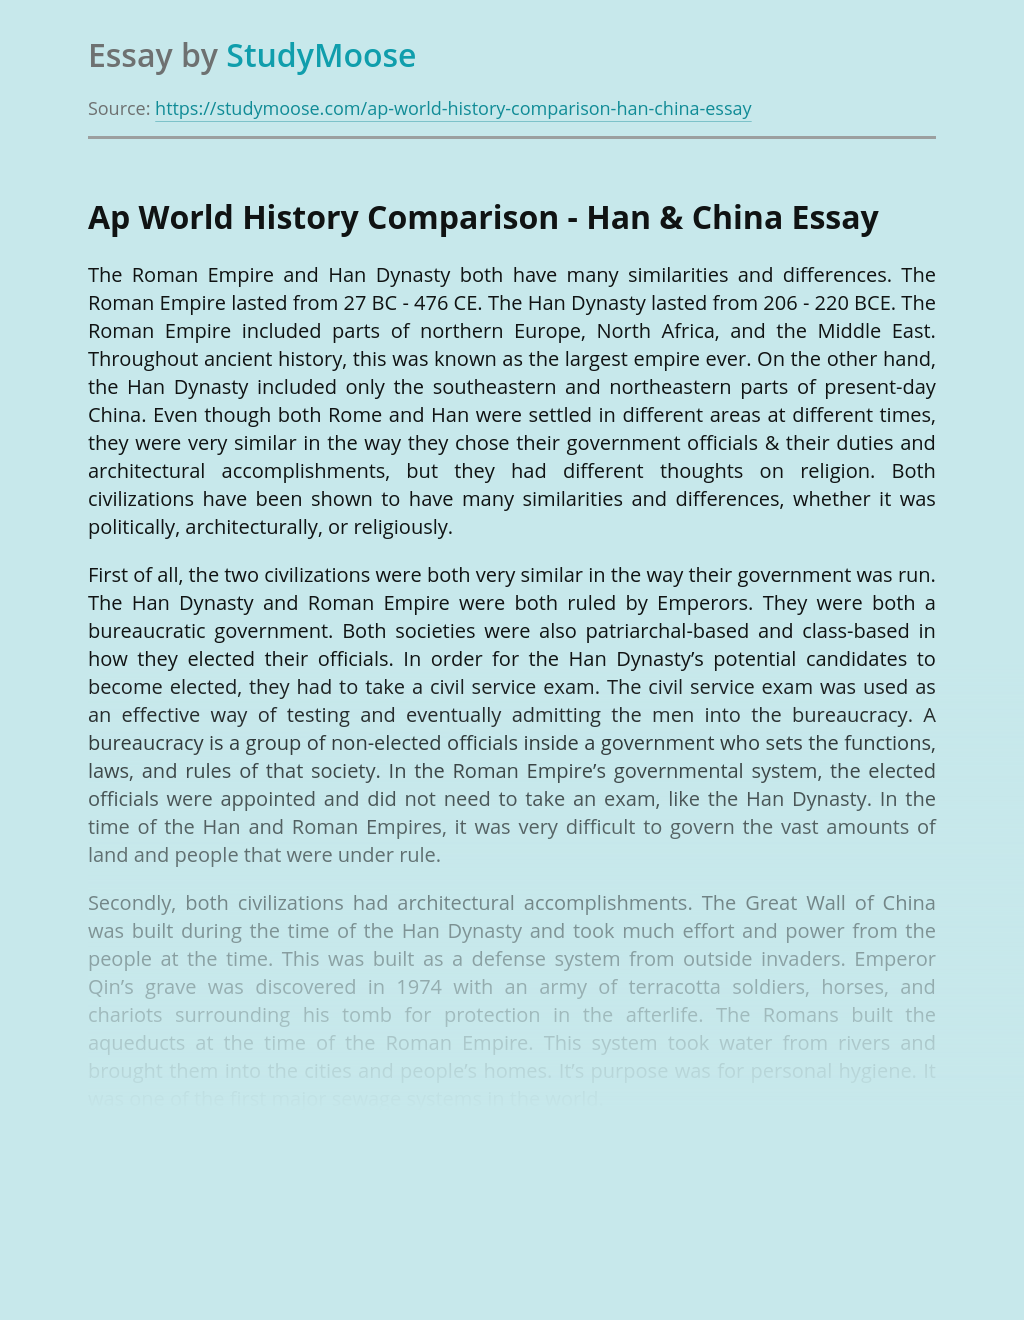 Ap World History Comparison - Han & China